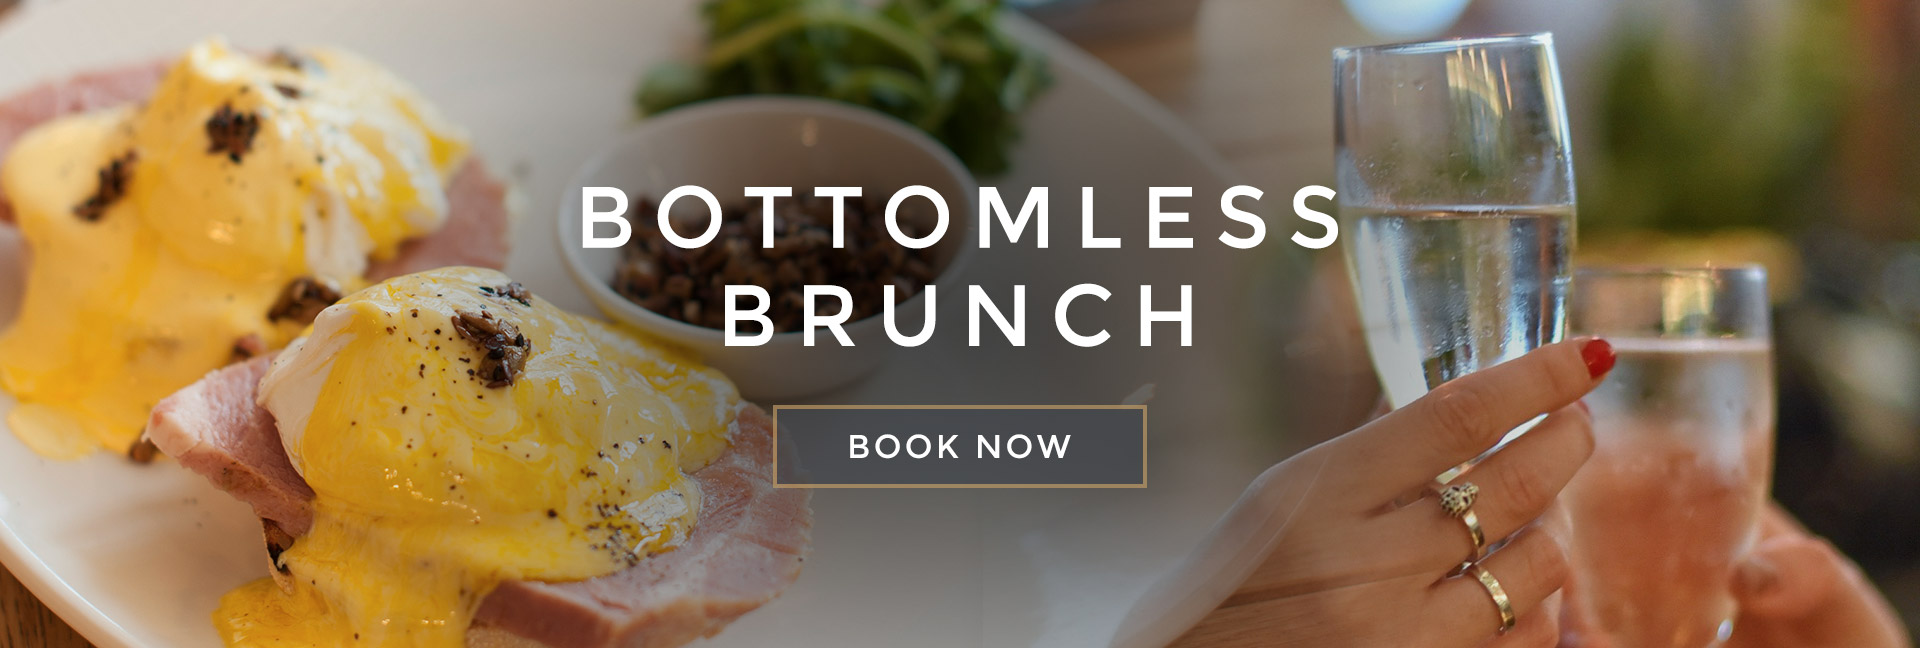 Bottomless Brunch at All Bar One Milton Keynes - Book now